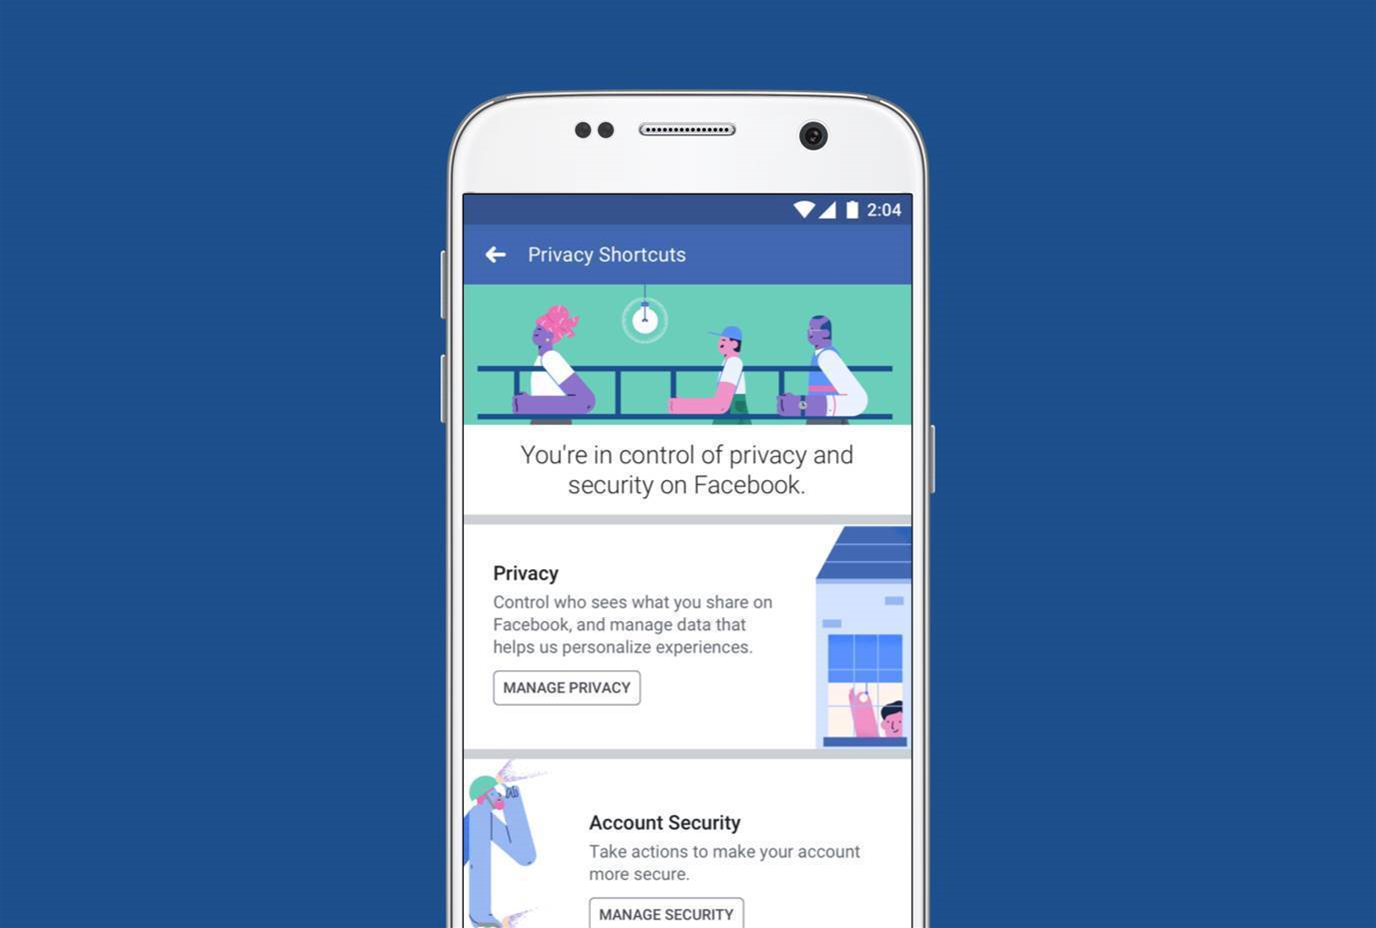 Facebook changes privacy controls in wake of data scandal